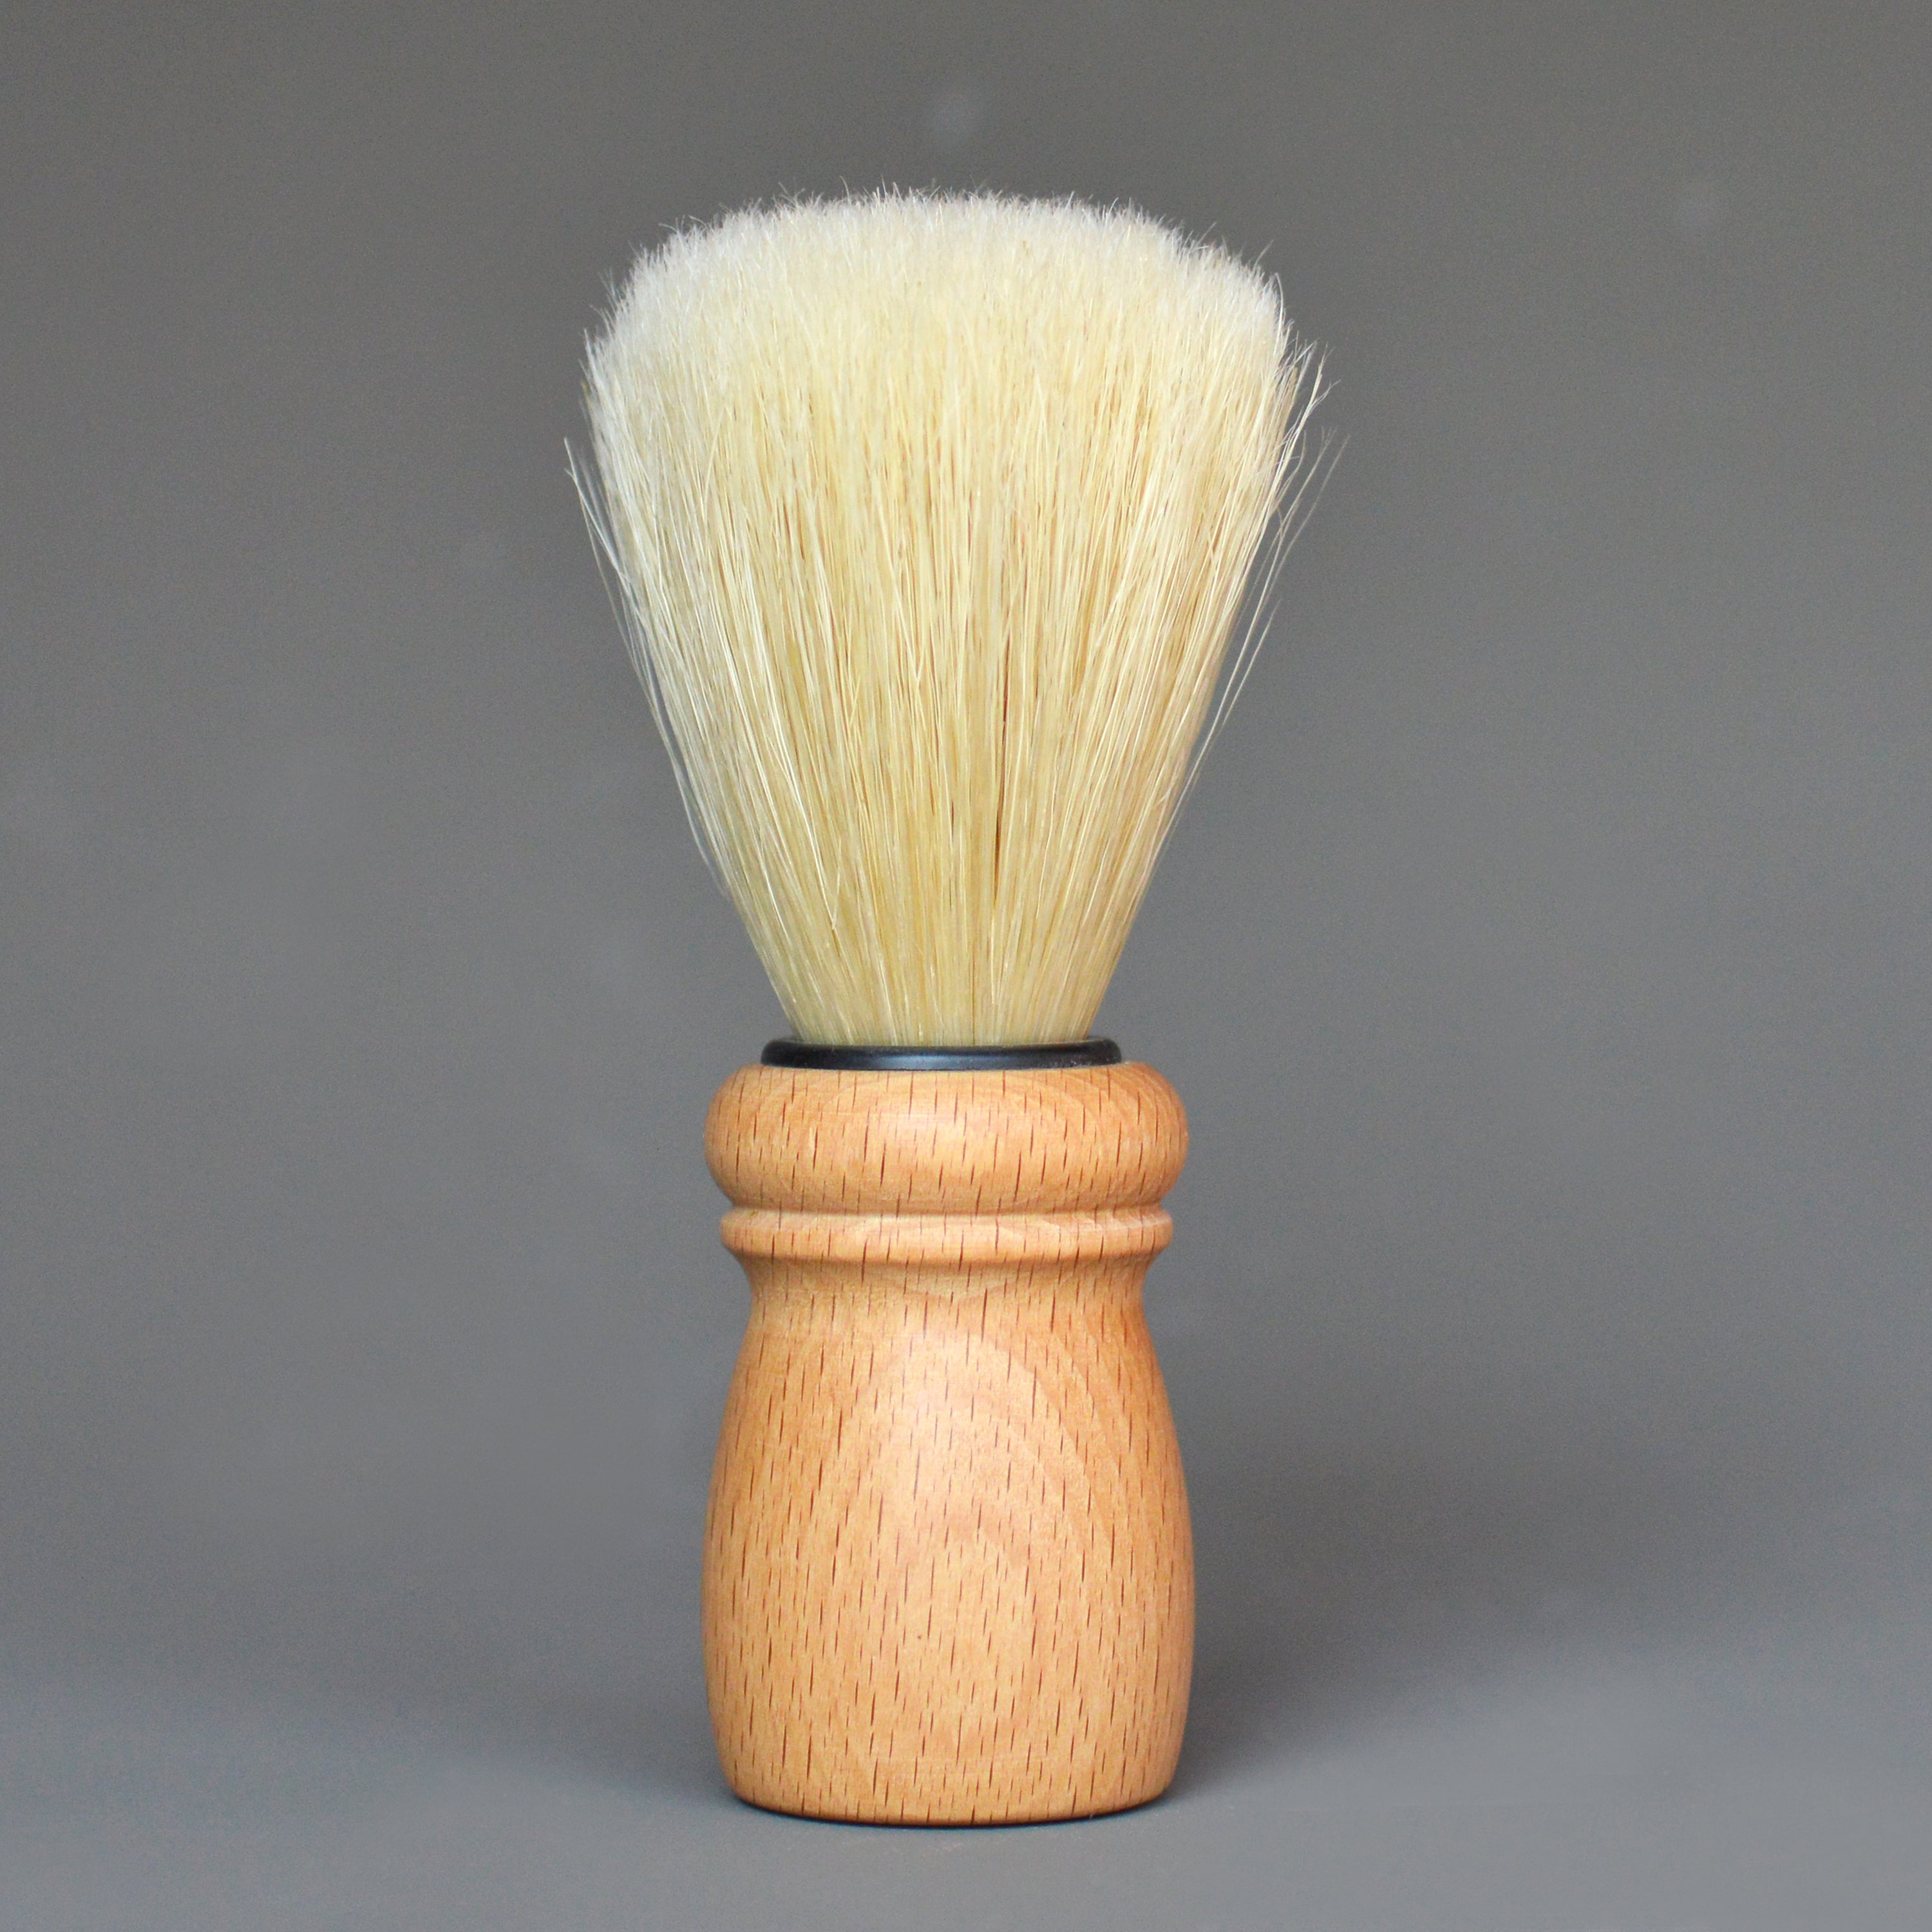 Beechwood Shaving Brush by Redecker